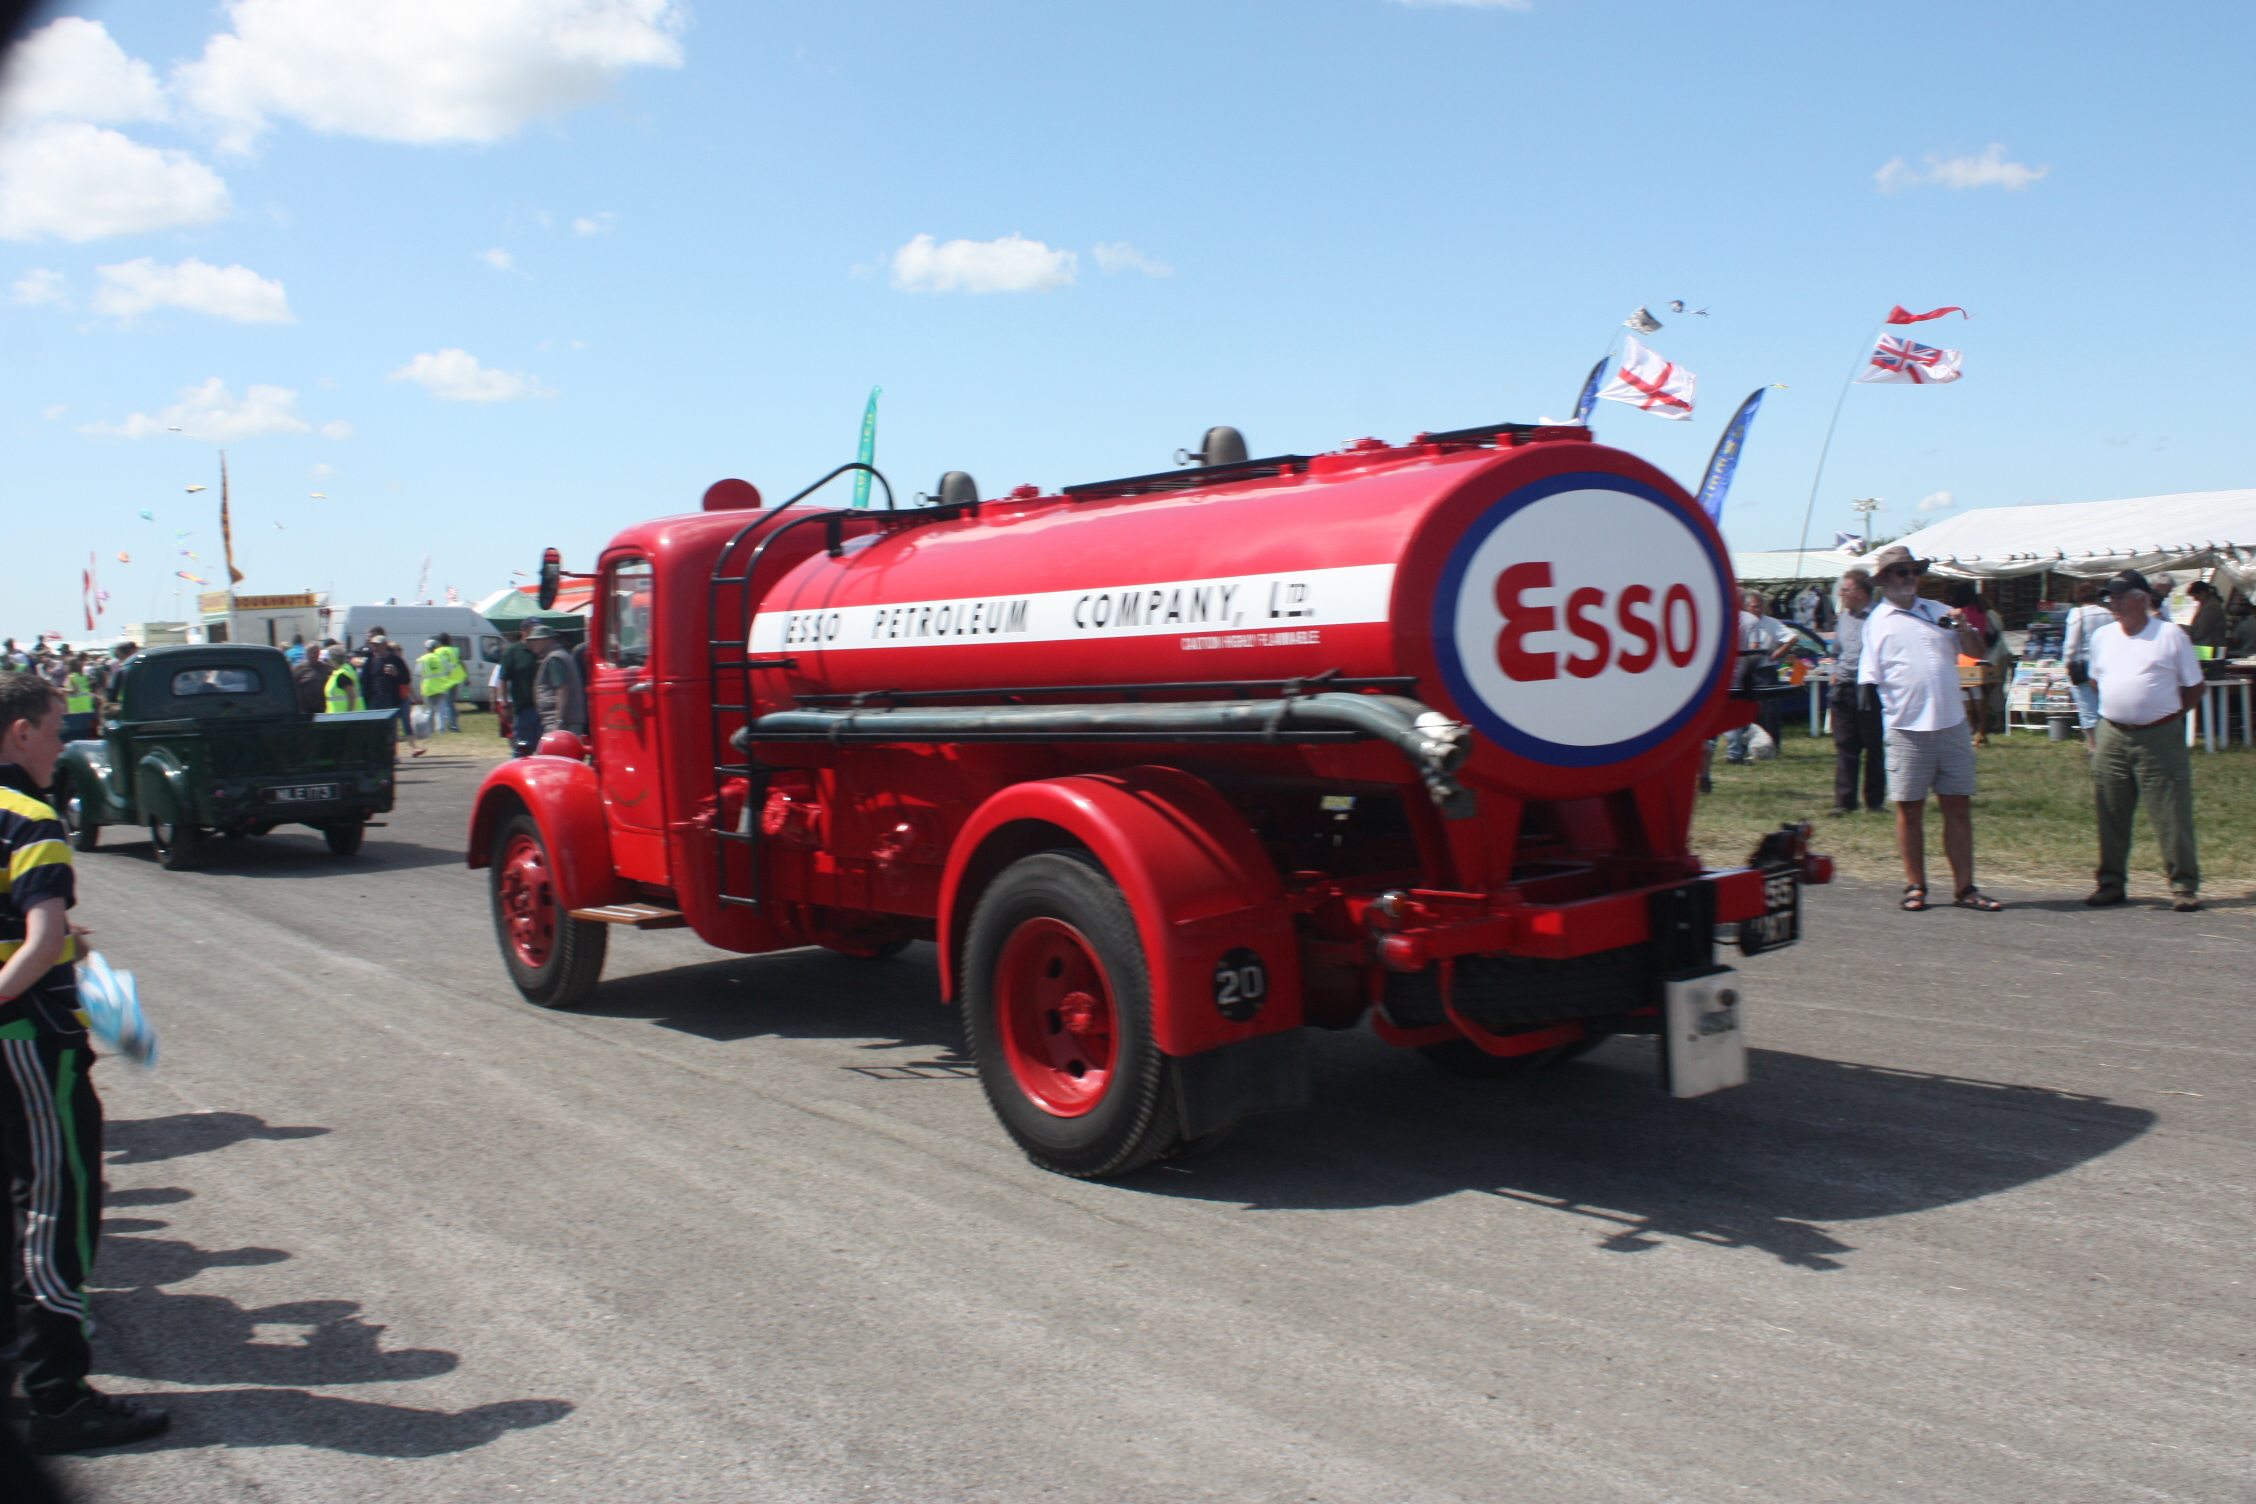 Bedford O Tanker - 855 UXT at Cumbria 09 - IMG 0594.jpg